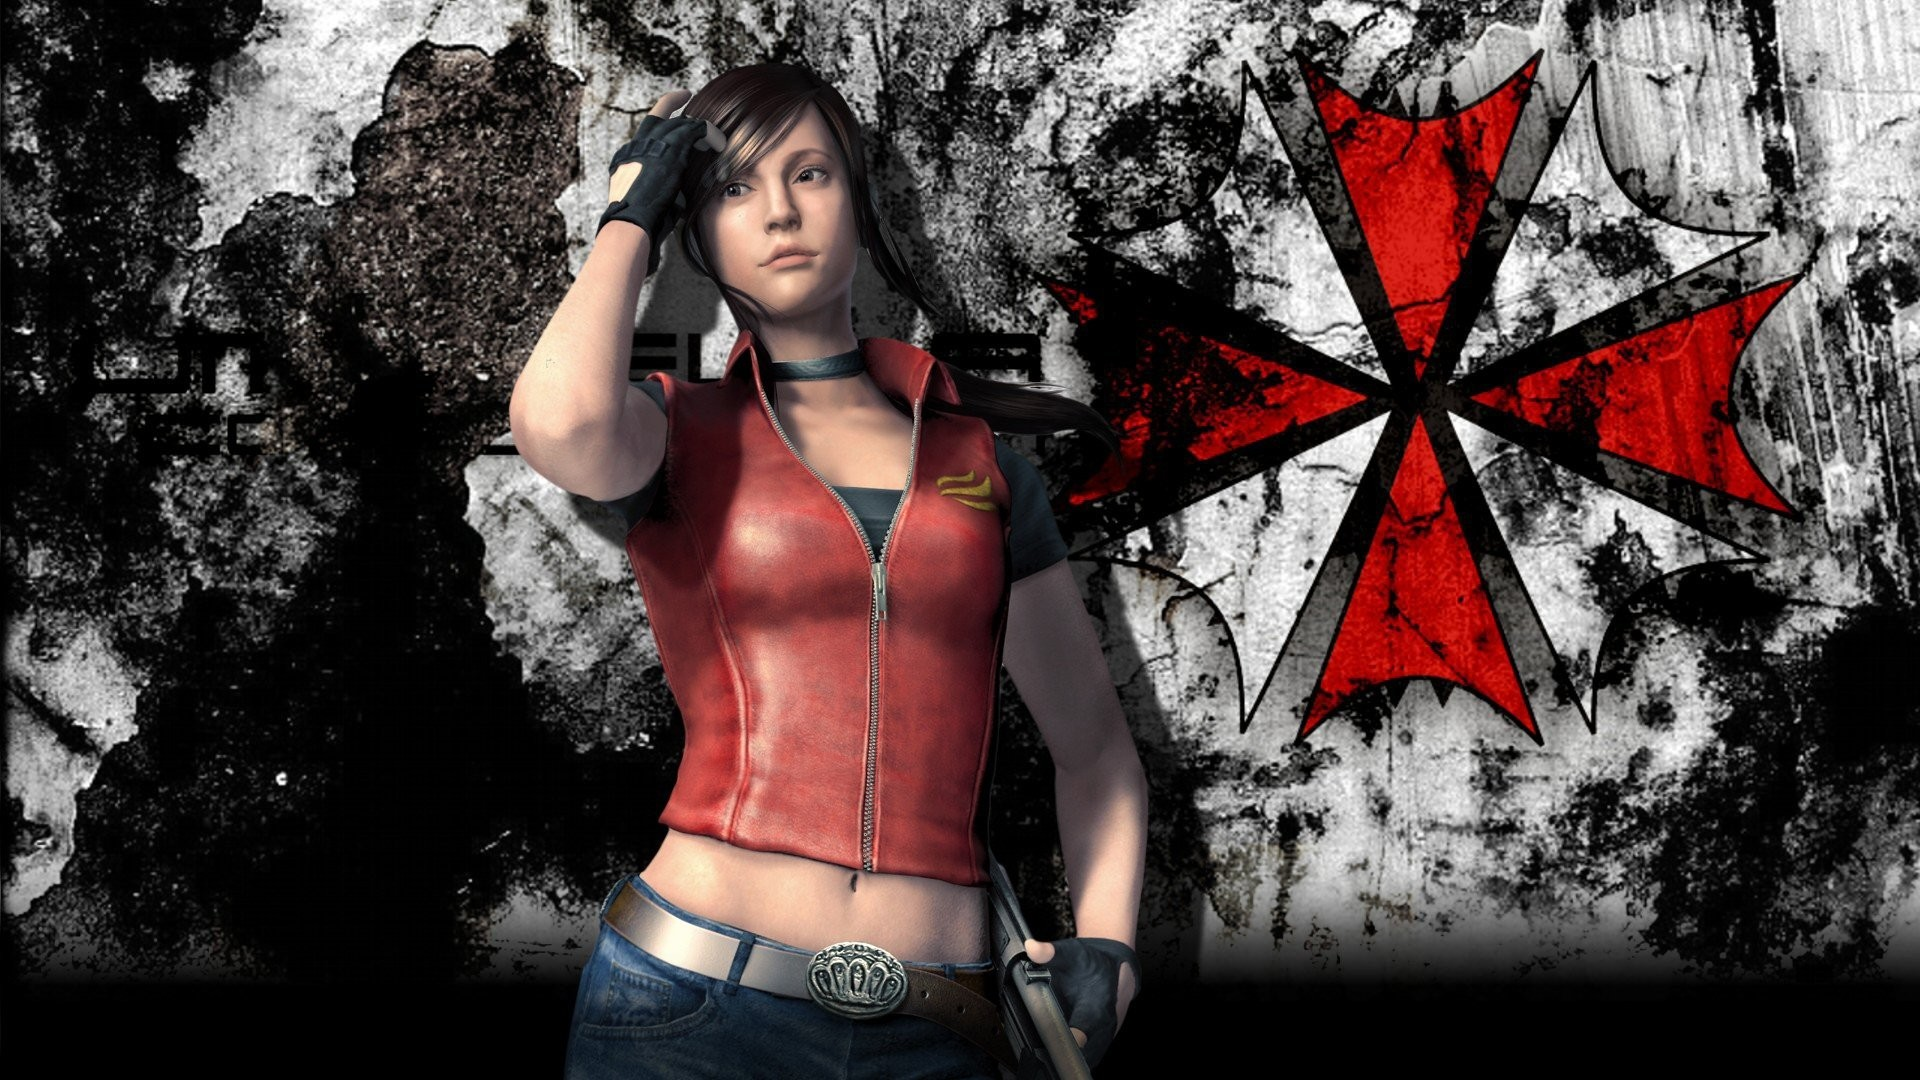 Res: 1920x1080, Download Wallpaper · ClaireClaire RedfieldRERedfieldResident Evil